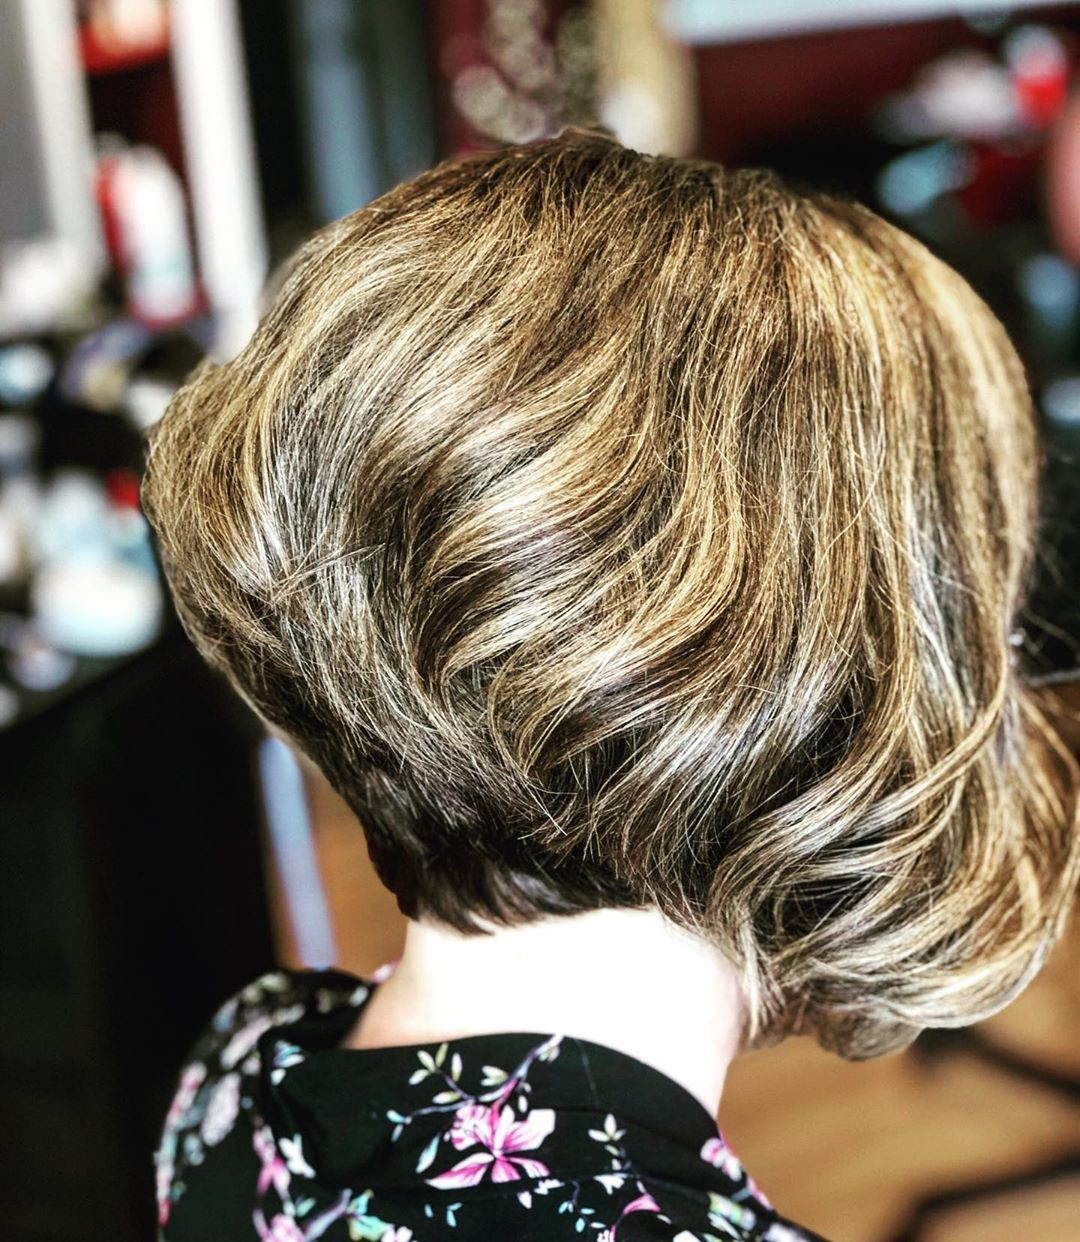 Best Bob Hairstyles For Women Over 50 - It's Rosy